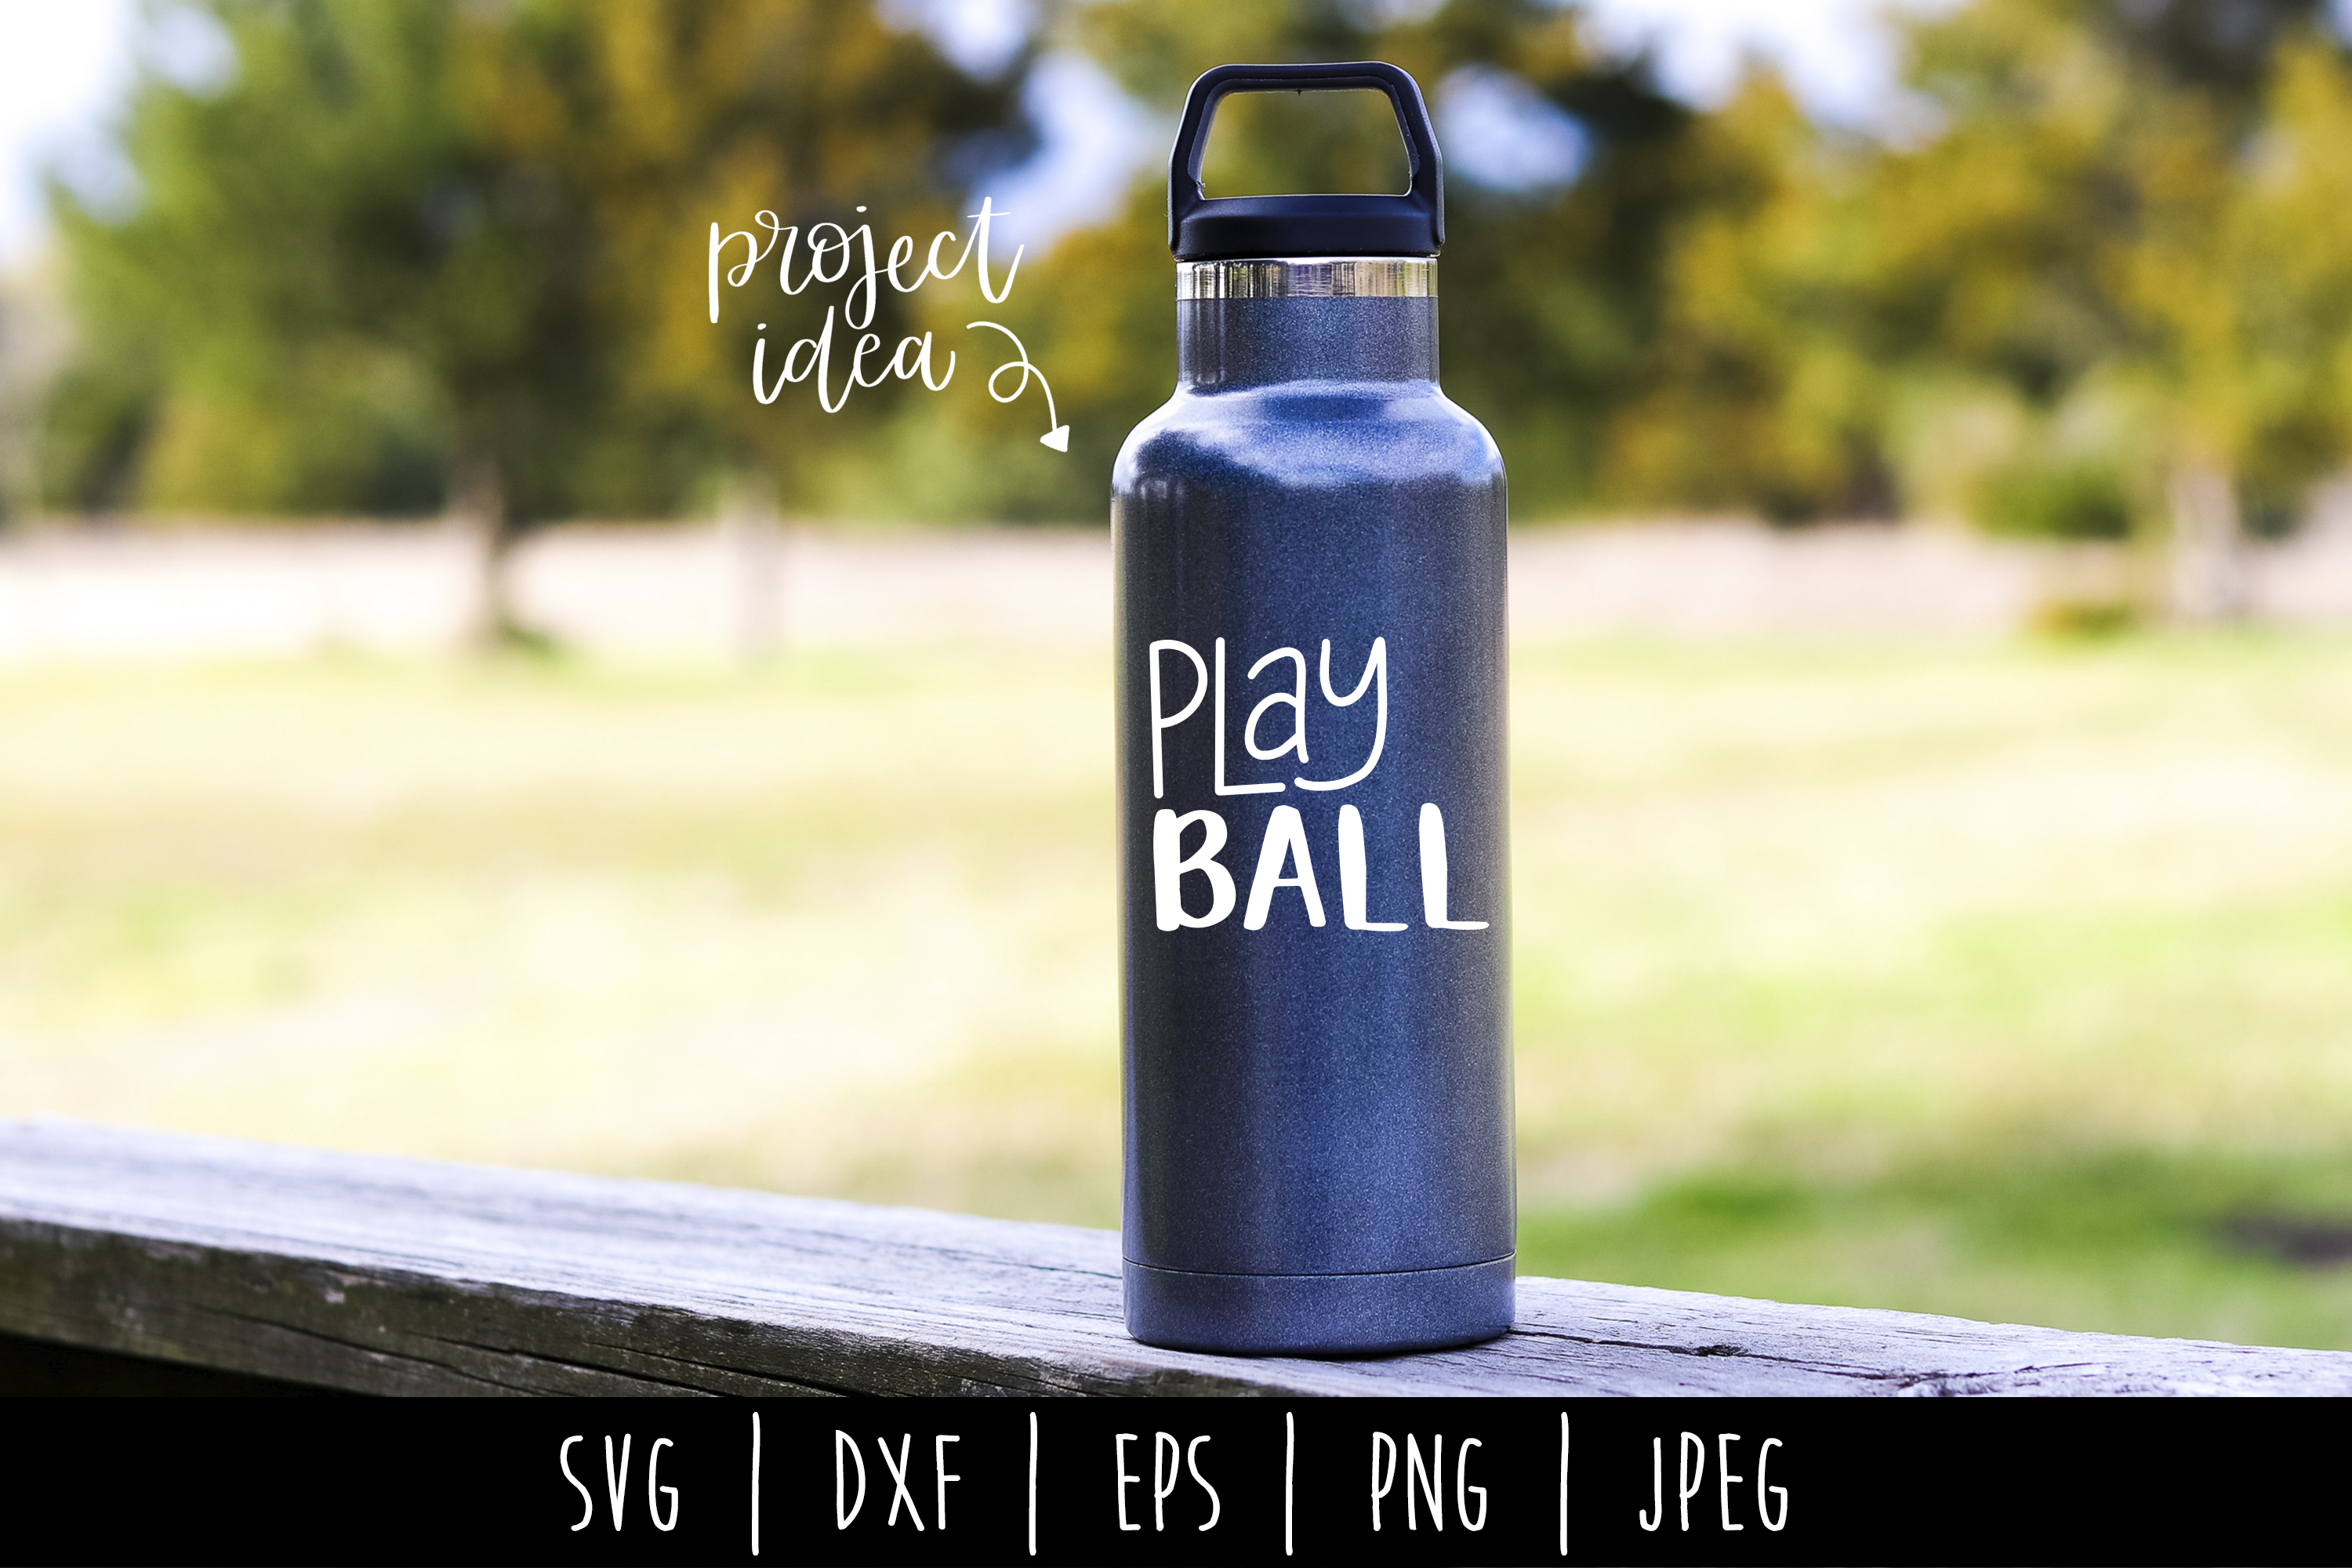 Download Free Play Ball Svg Graphic By Savoringsurprises Creative Fabrica for Cricut Explore, Silhouette and other cutting machines.